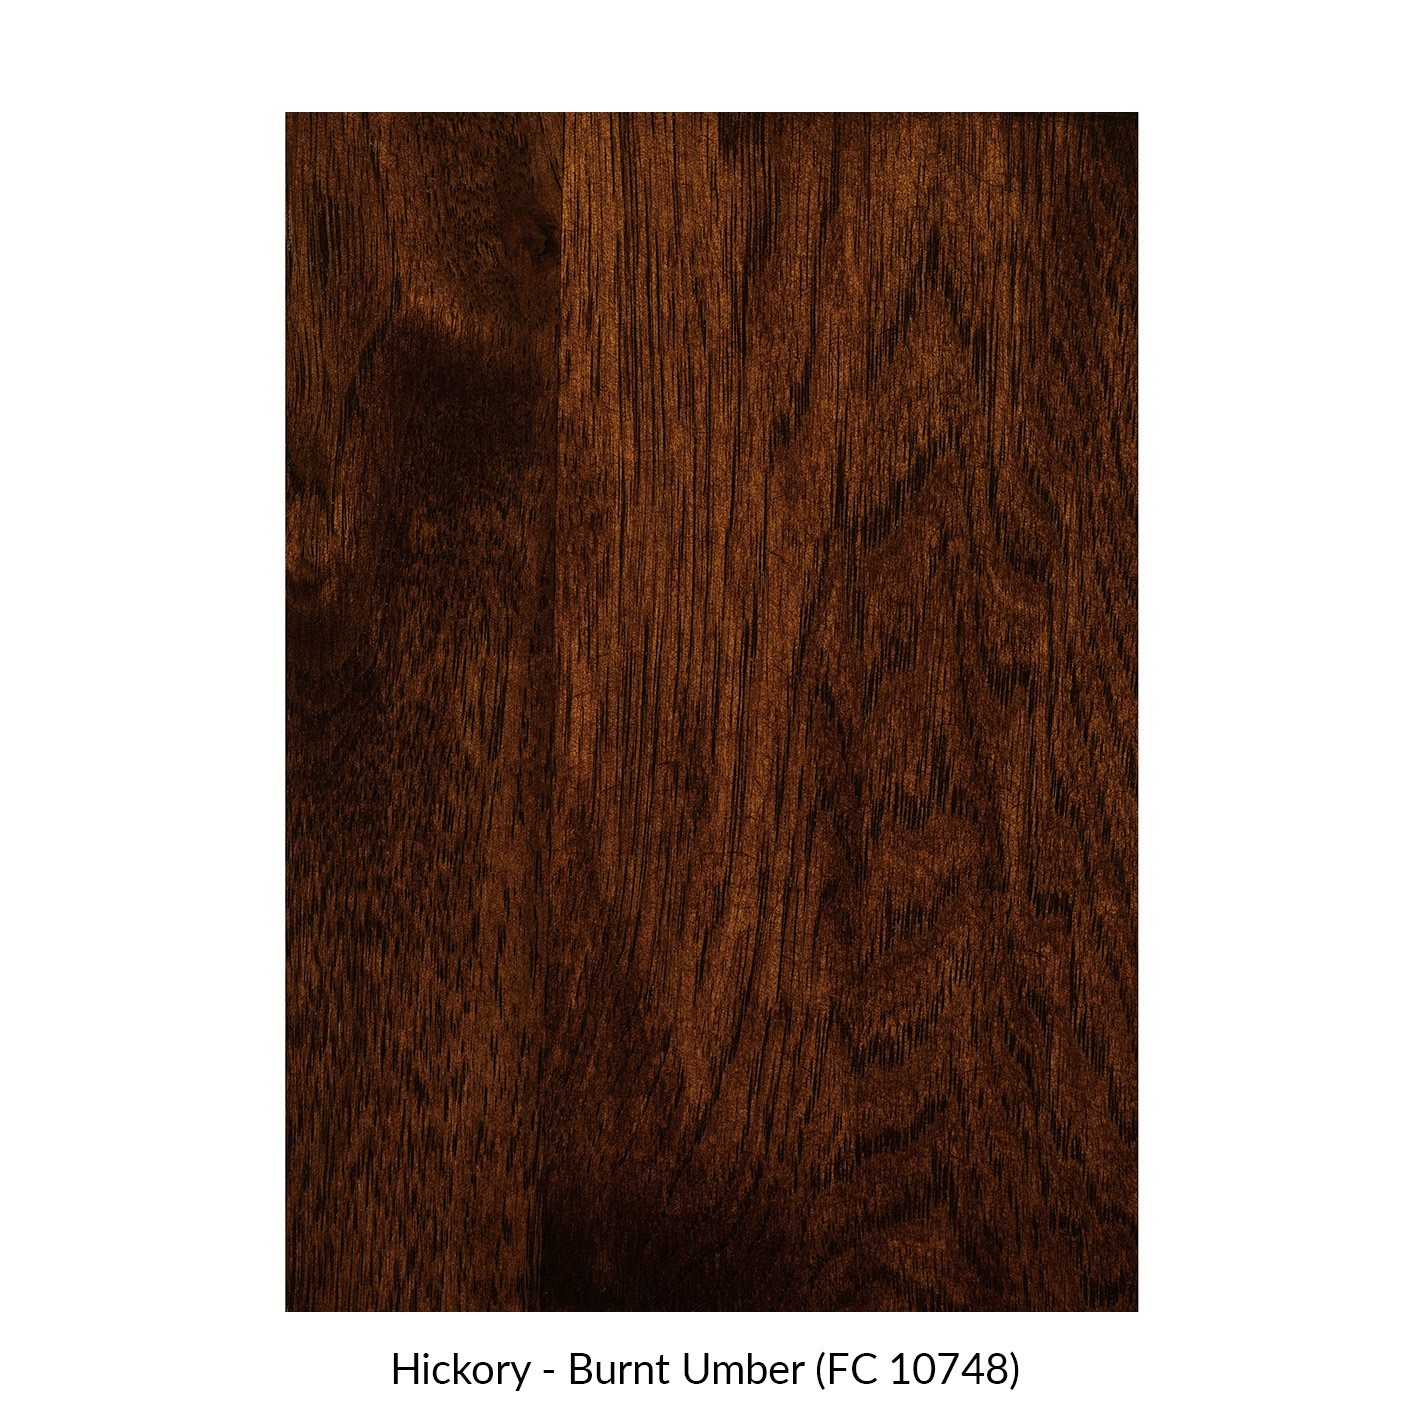 spectrum-hickory-burnt-umber-fc-10748.jpg